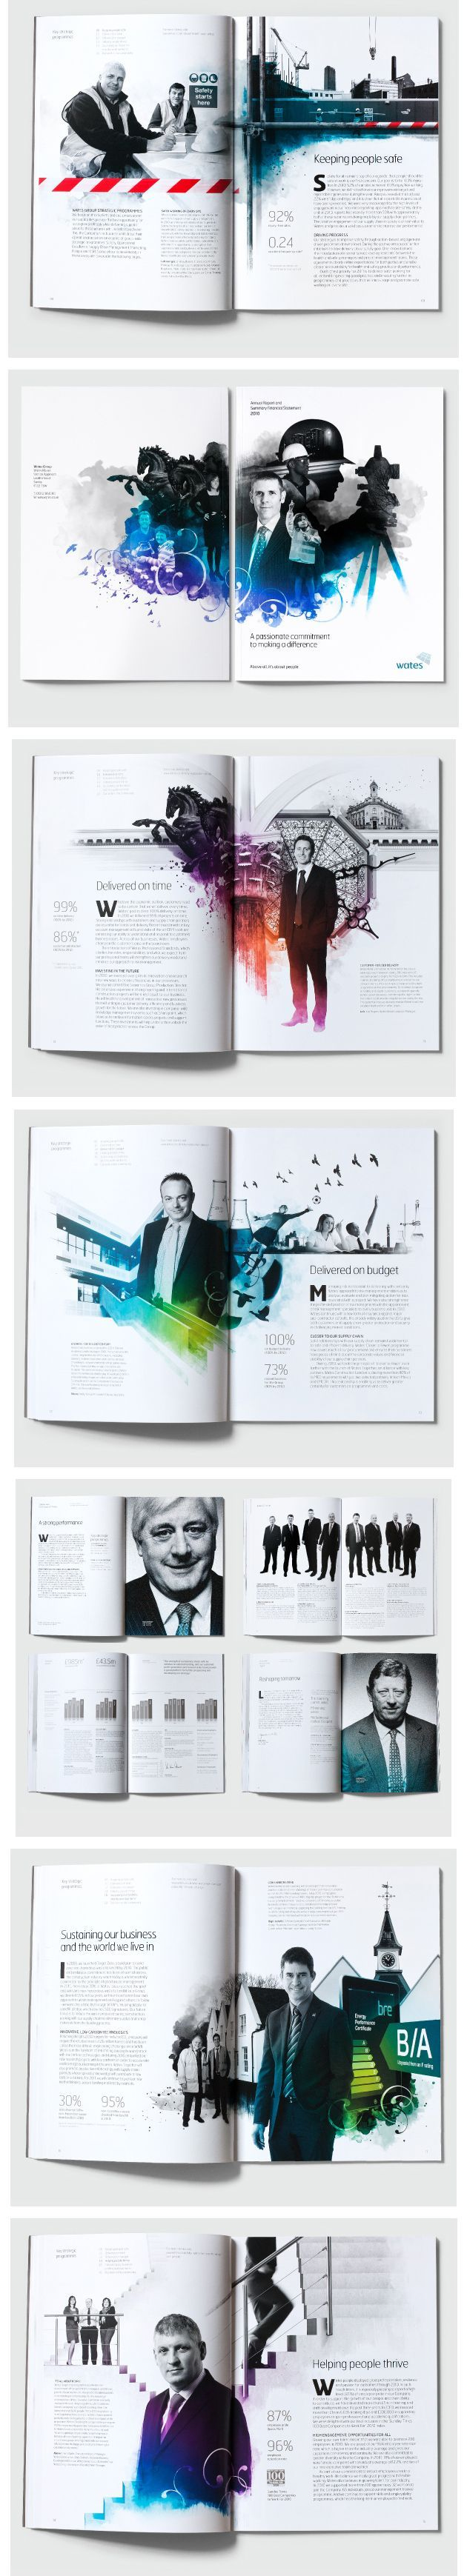 wates group - 2010 annual report   Love this use of white space, grayscale images and splashes of color.